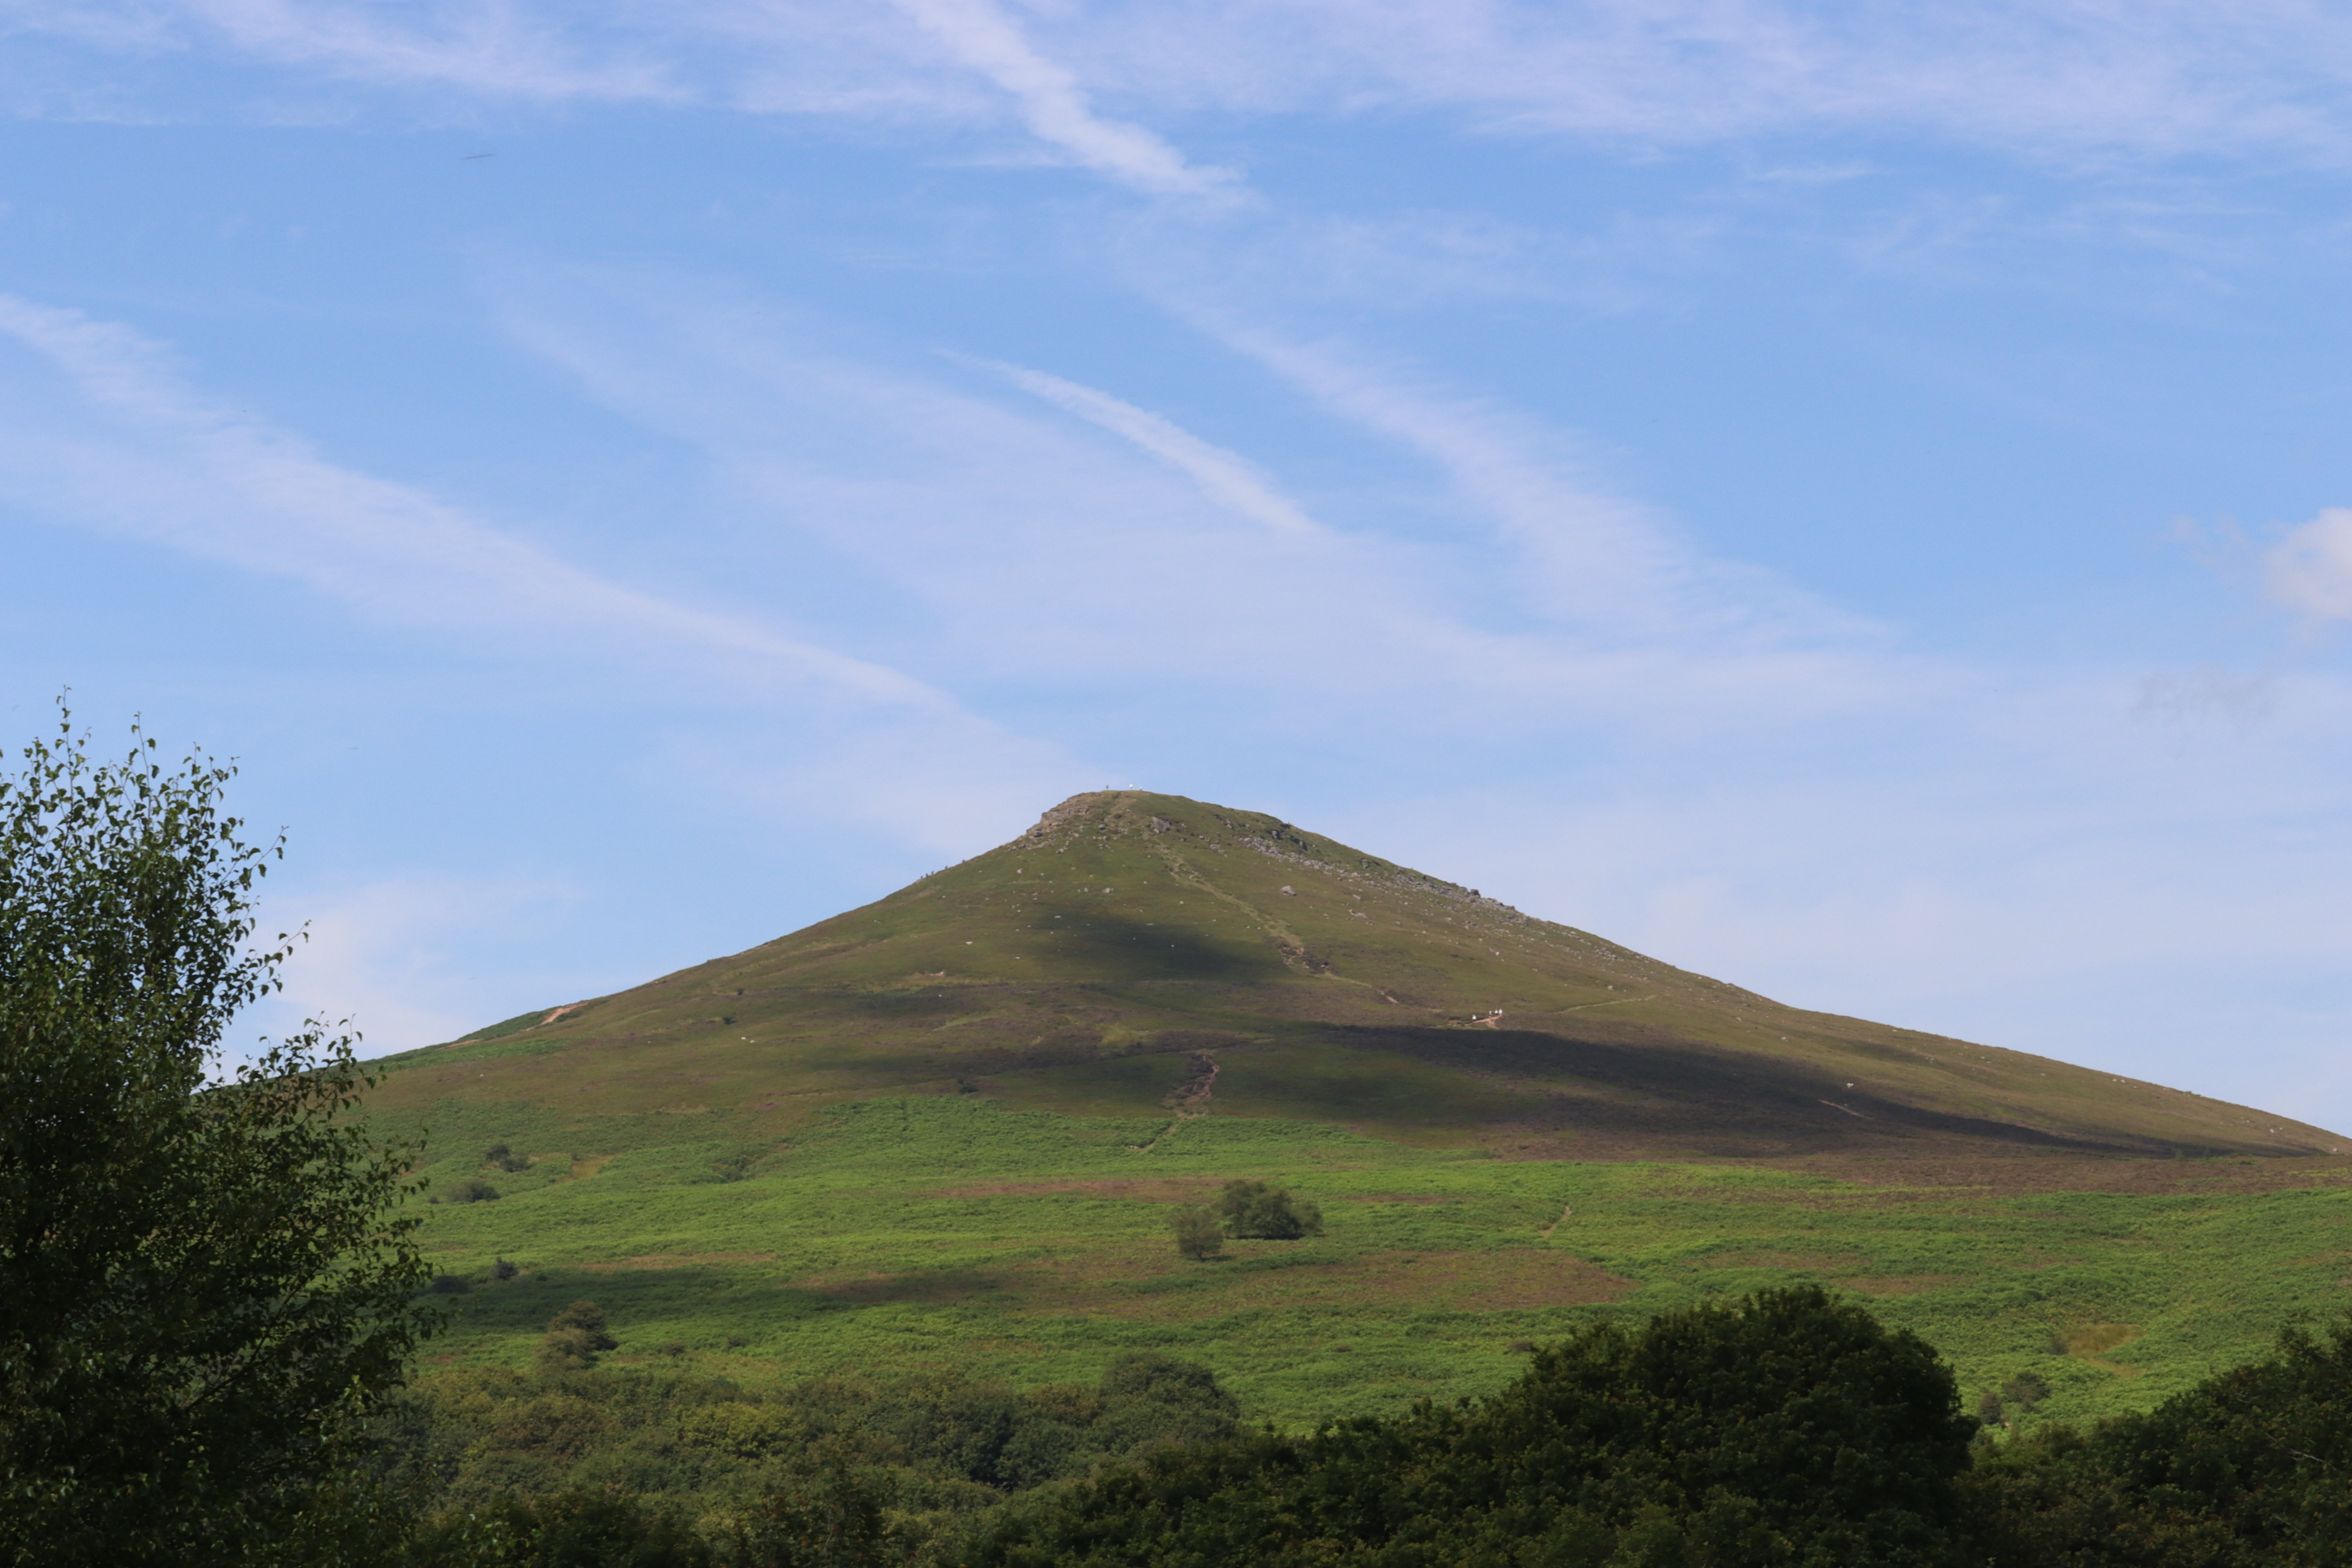 Sugar loaf mountain with trees in the foreground.